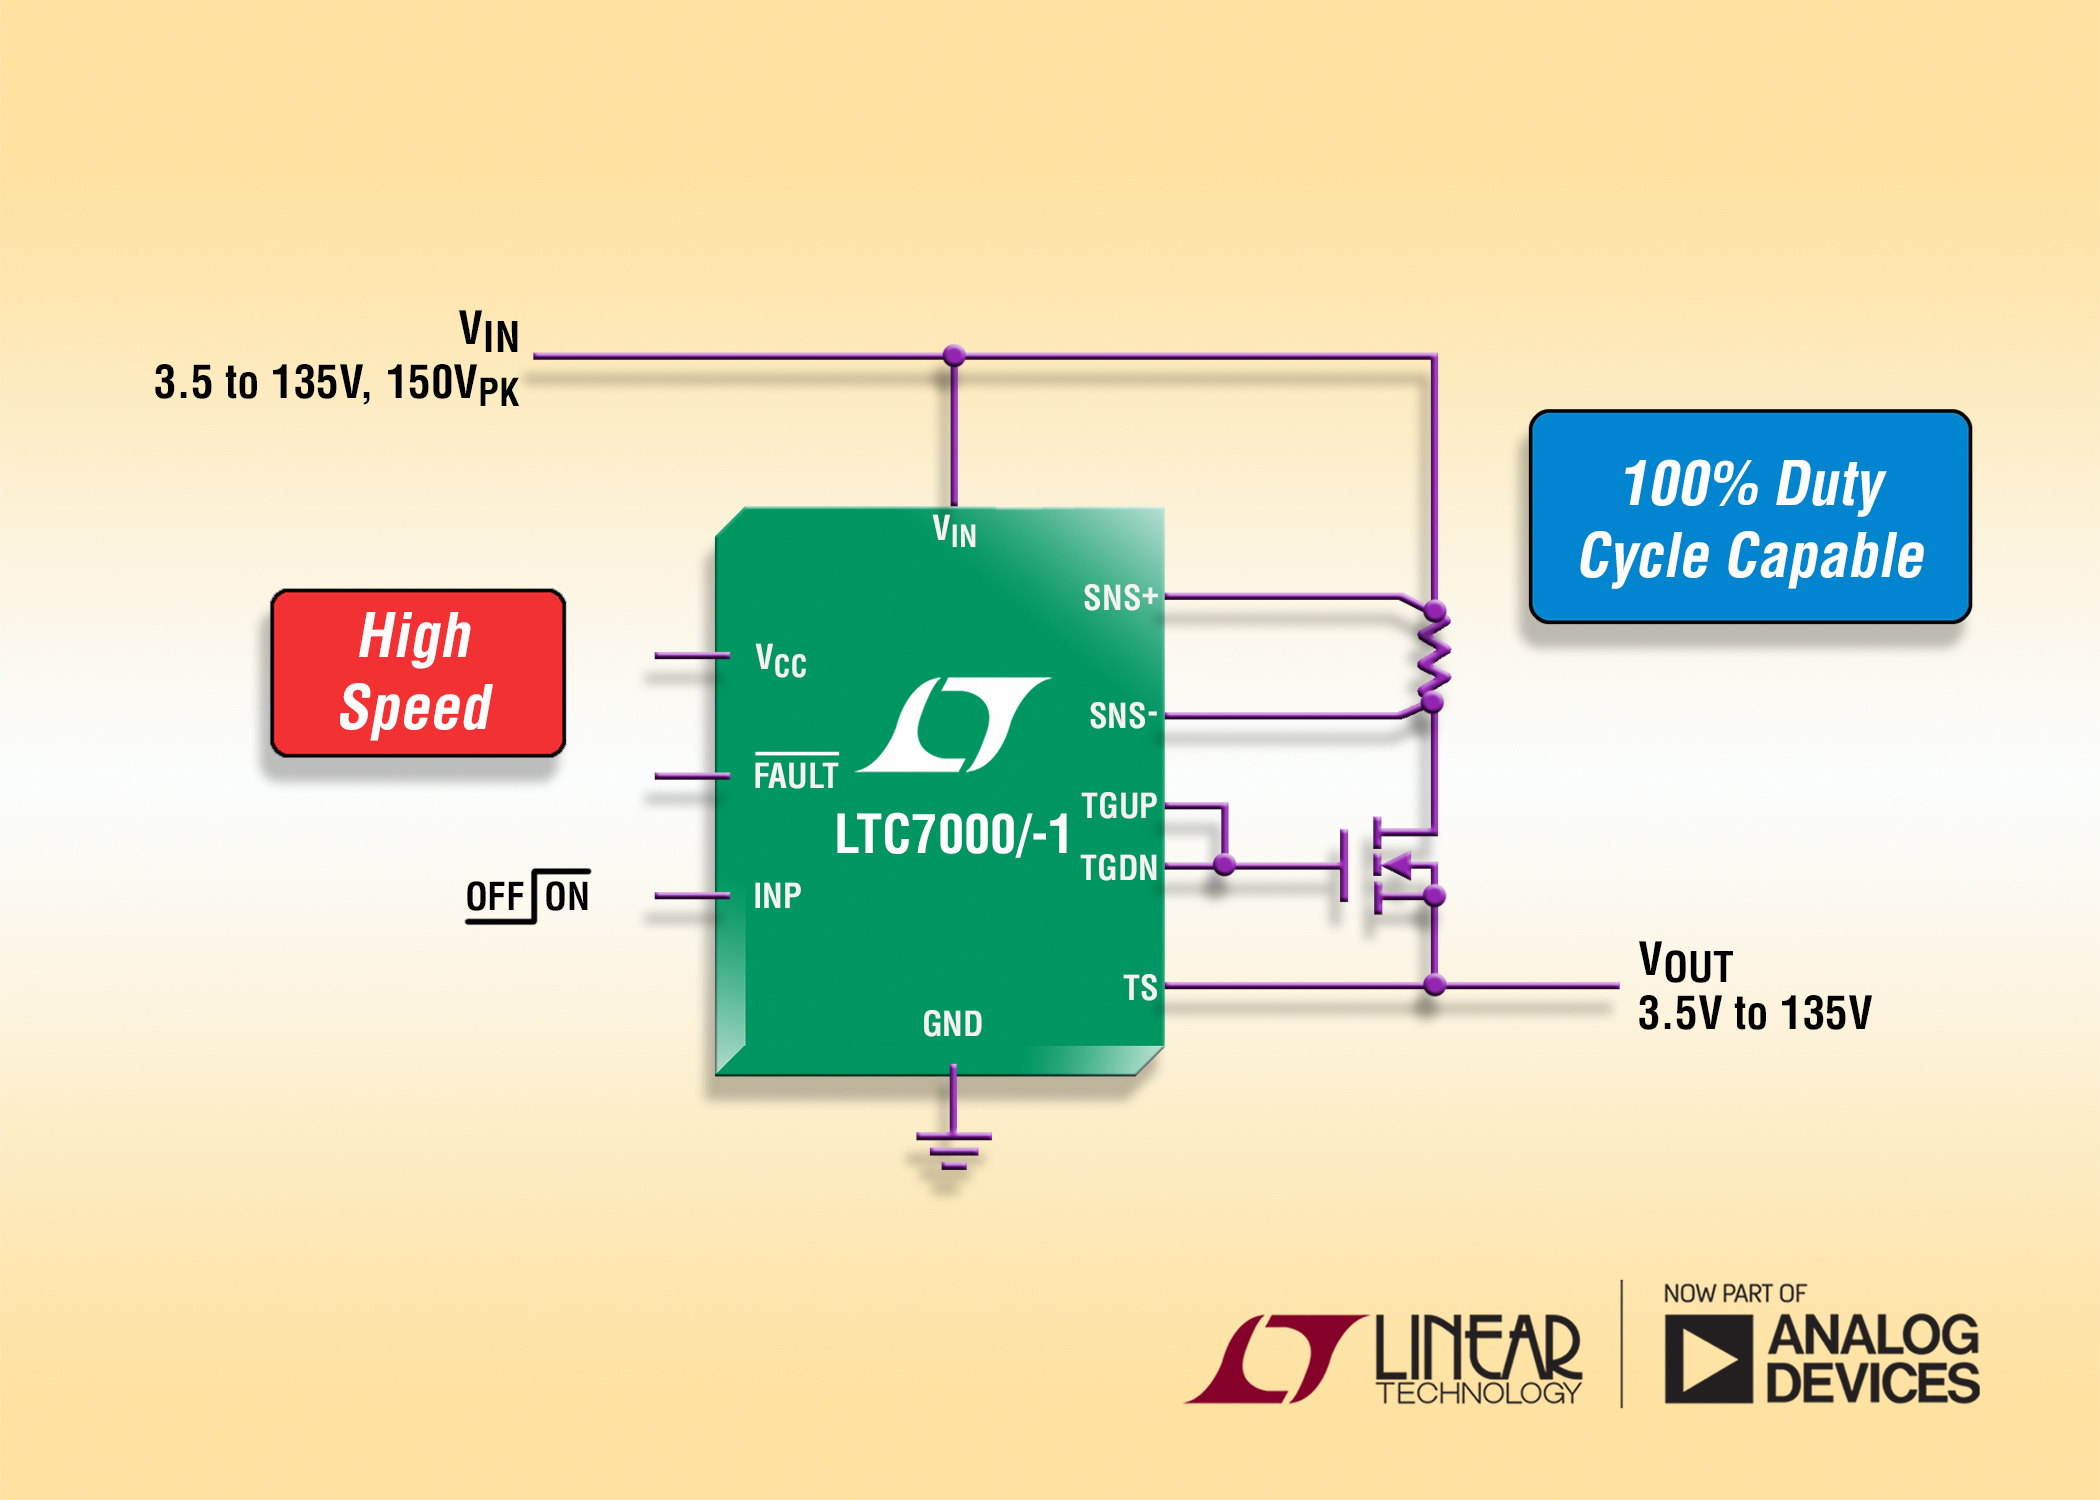 Mosfet Driver Provides 100 Duty Cycle Capability Current Limiting Circuit Linear Voltage Regulator And Three Operating Junction Temperature Grades Are Available With Extended Industrial Versions From 40 To 125c High Temp Automotive Version